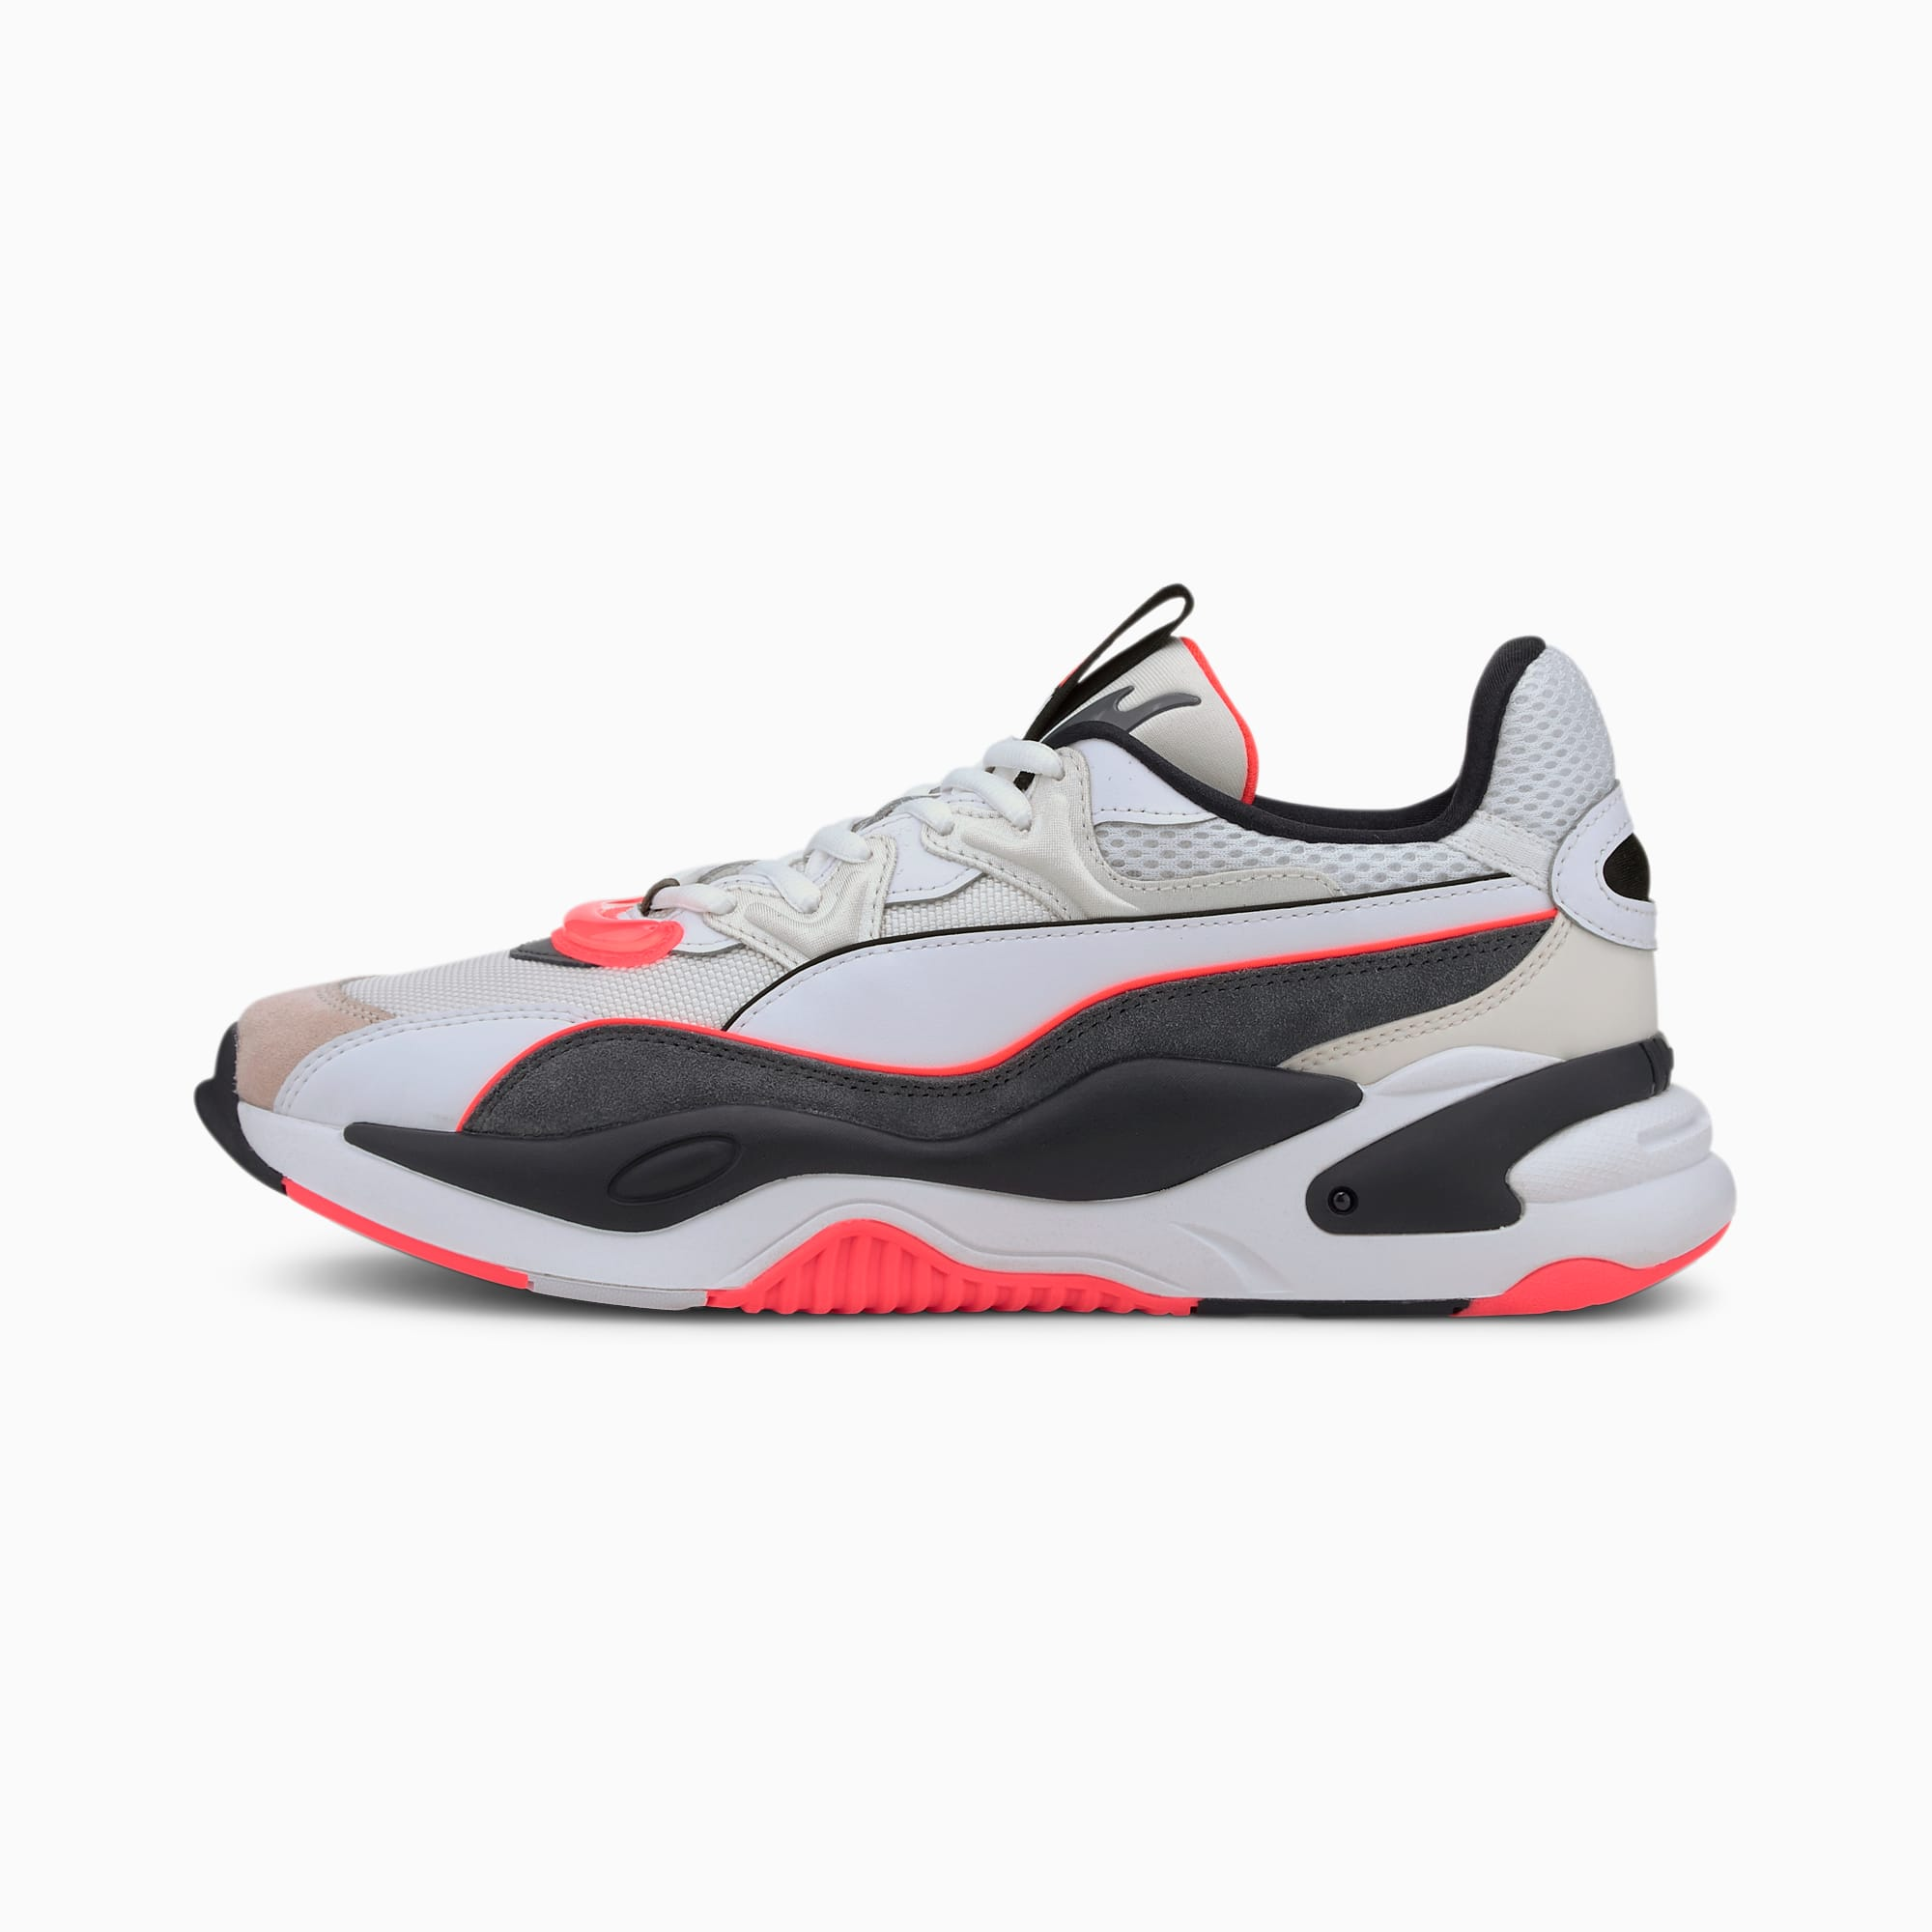 RS-2K Messaging Shoes